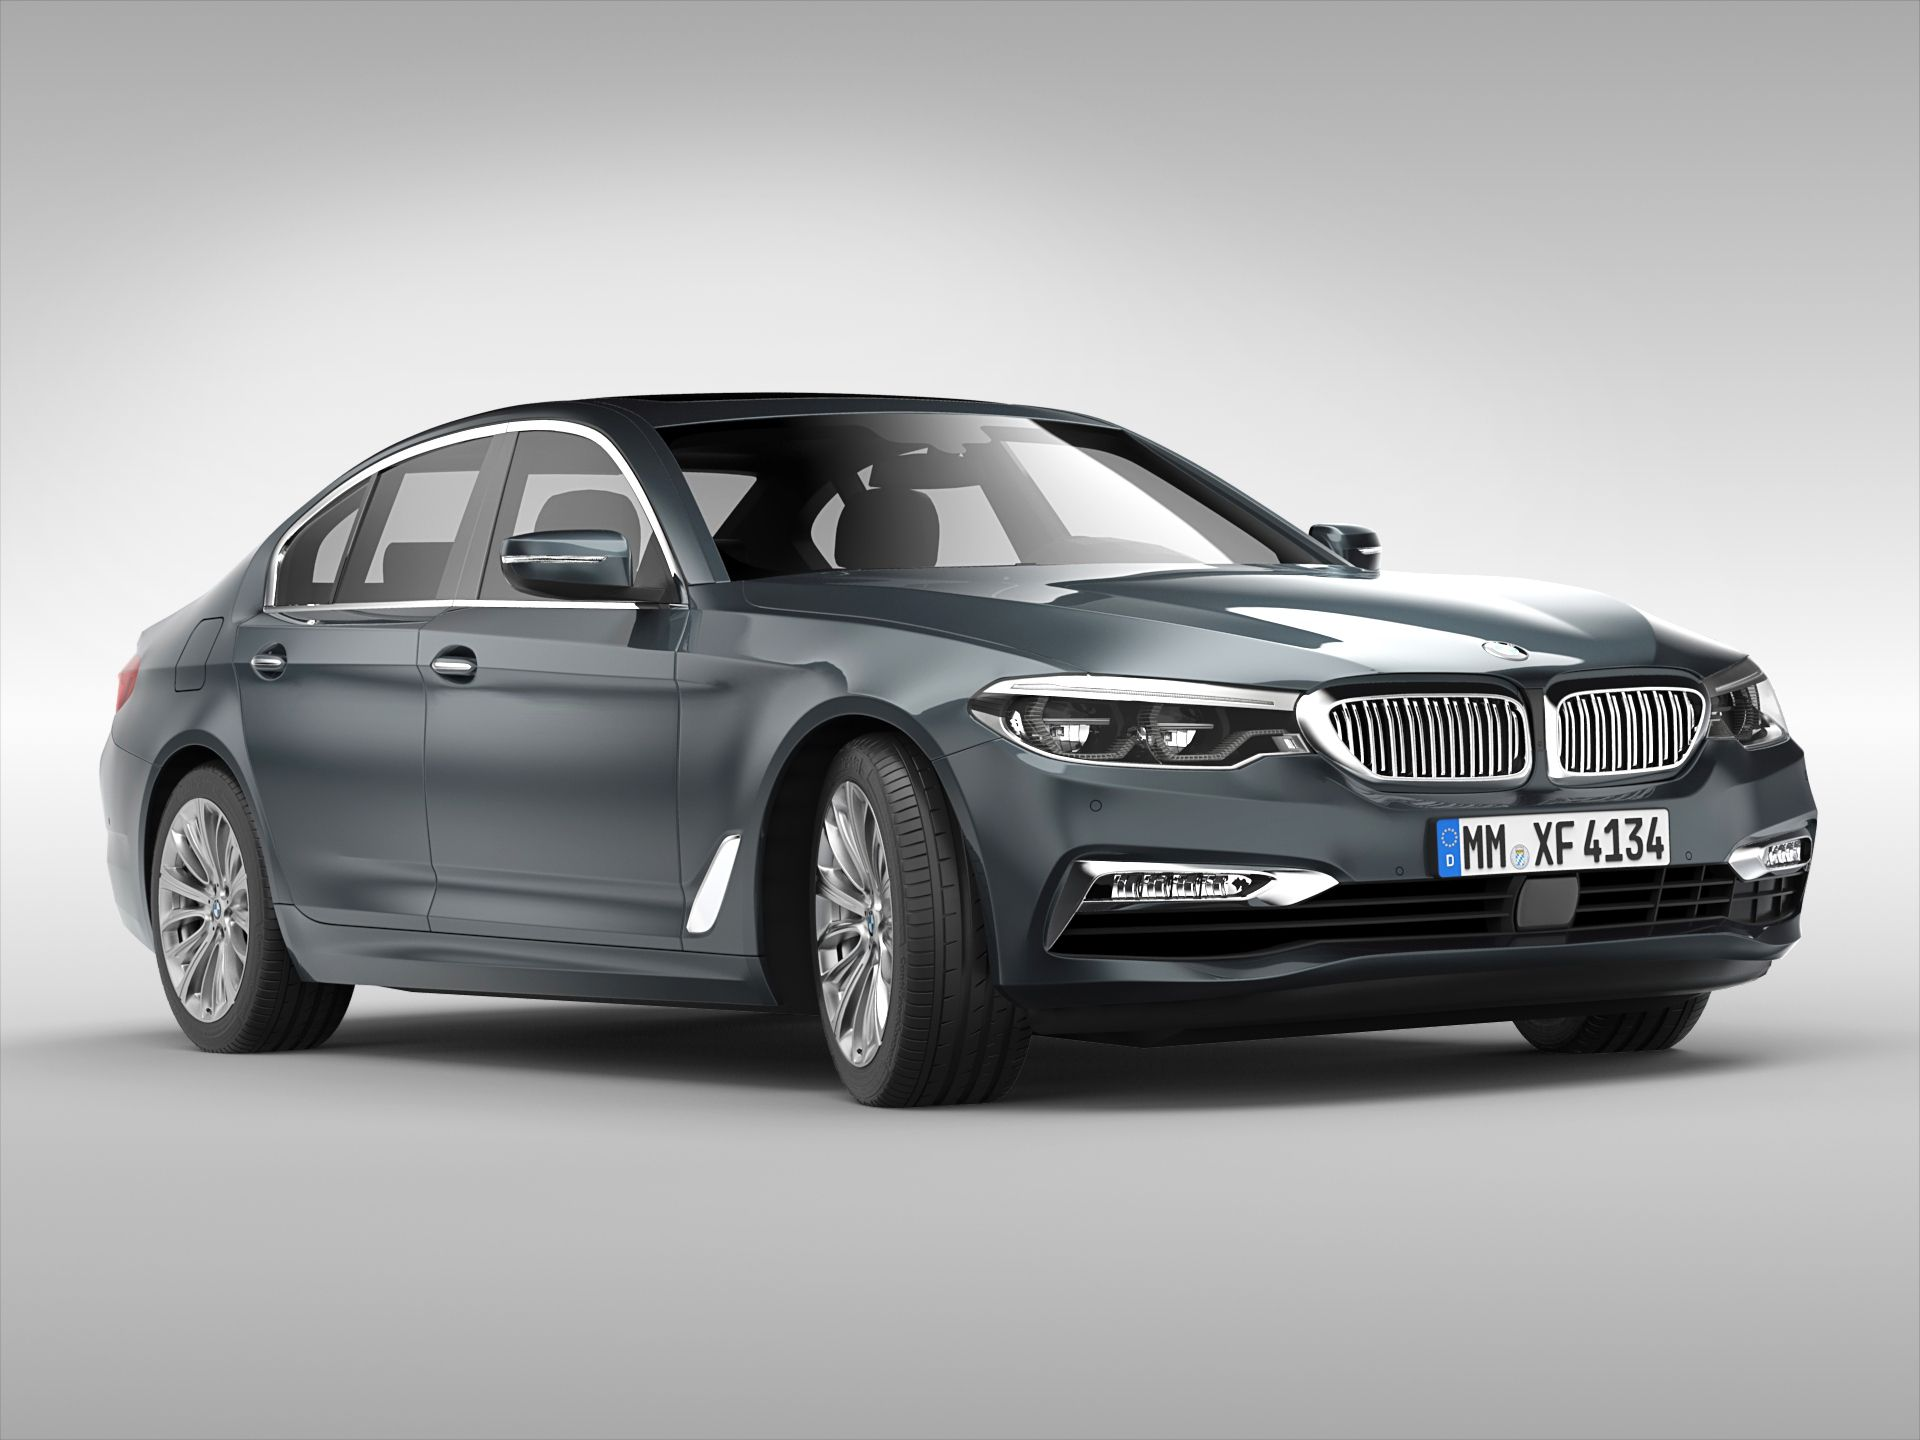 Bmw 5 Series Available For Rent This Is Bussiness Class Sedan Car